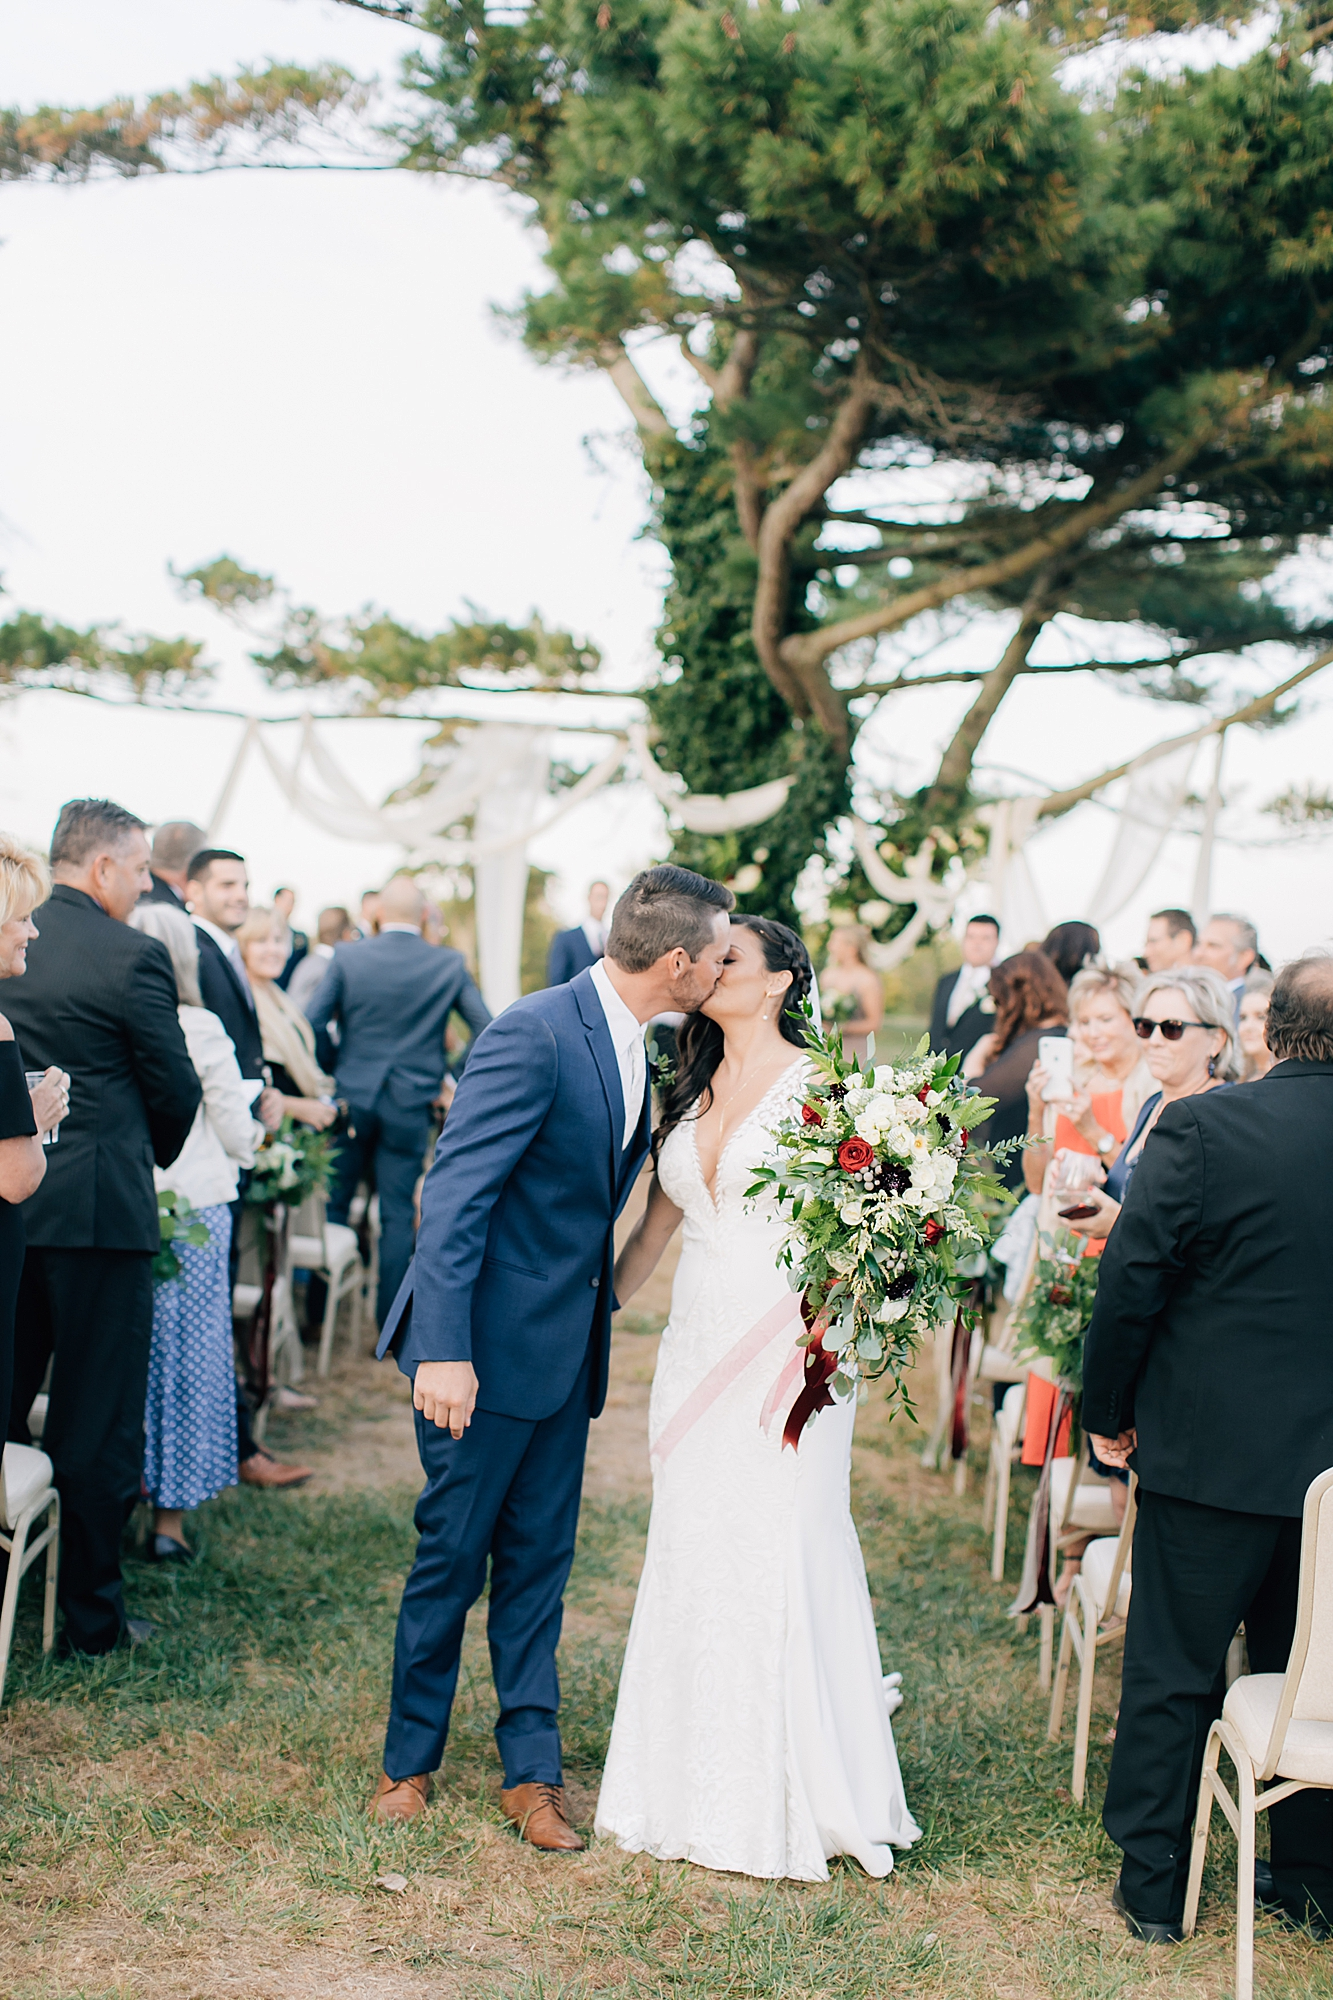 Linwood Country Club Film Wedding Photography by Magdalena Studios South Jersey Wedding Photographer 20